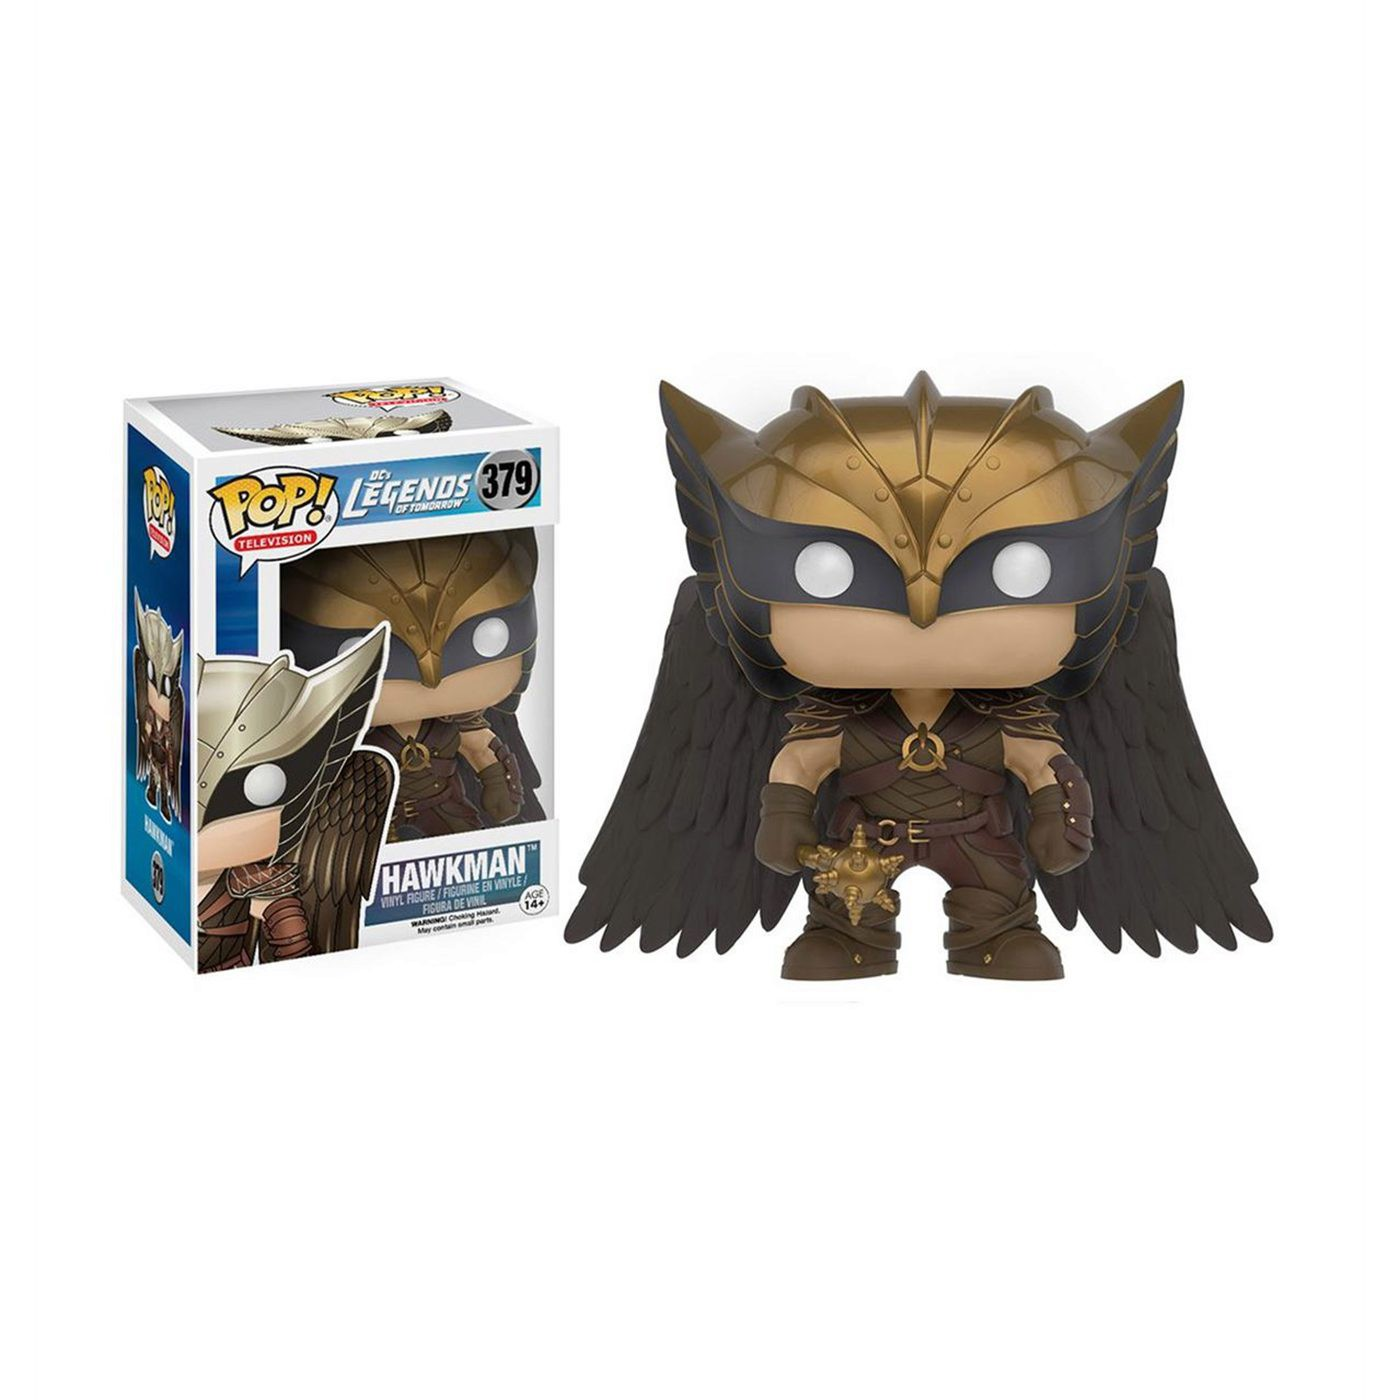 Hawkman TV Legends of Tomorrow Funko Pop Vinyl Figure